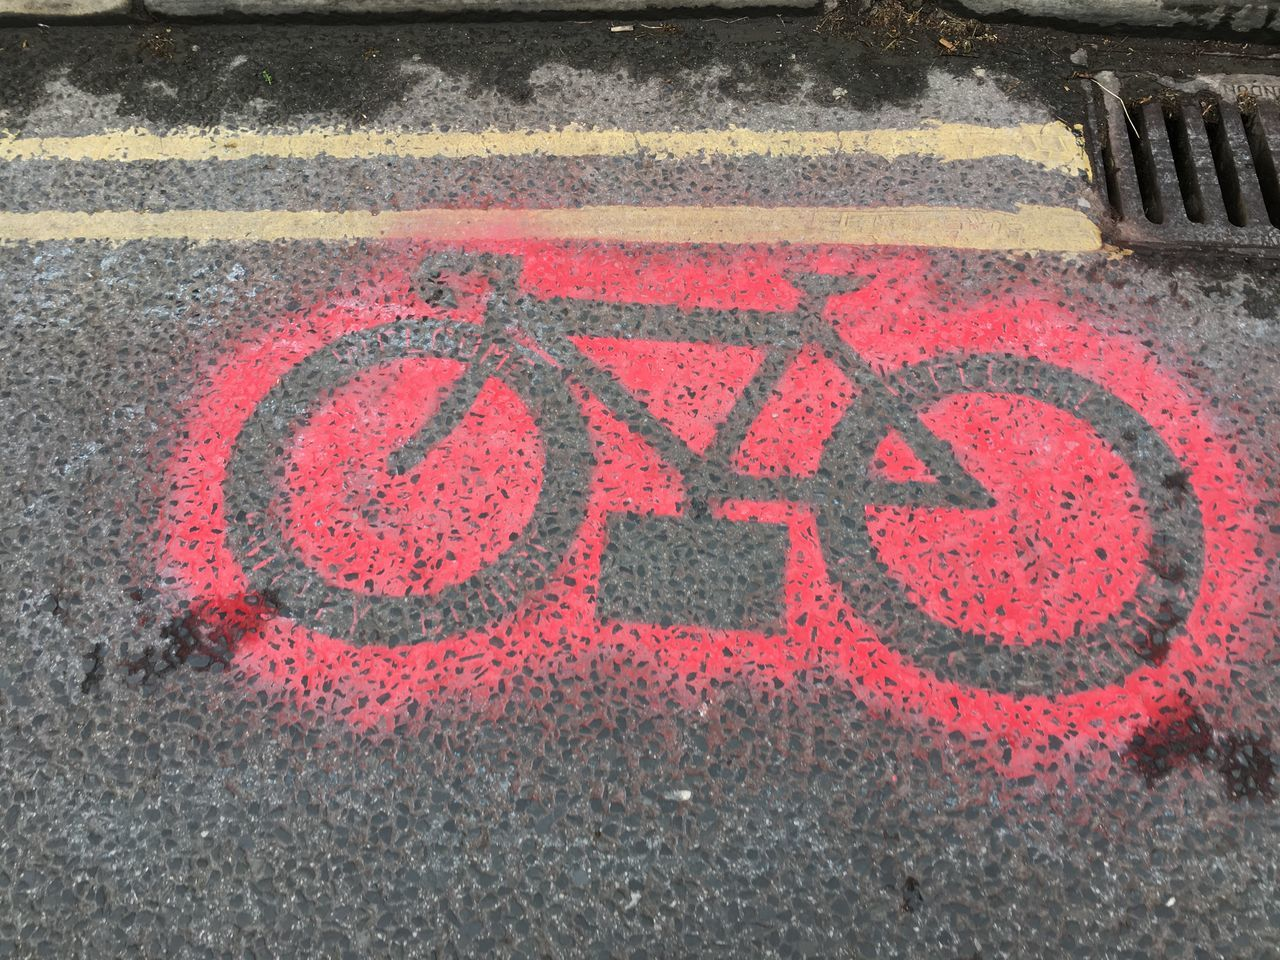 Tour de Yorkshire stencil on road in Pateley Bridge, Yorkshire, United Kingdom Bicycle Bike Close-up Cycle High Angle View No People Outdoors Paint Pateley Bridge Stencil Stencil Art Tour De Yorkshire Yorkshire